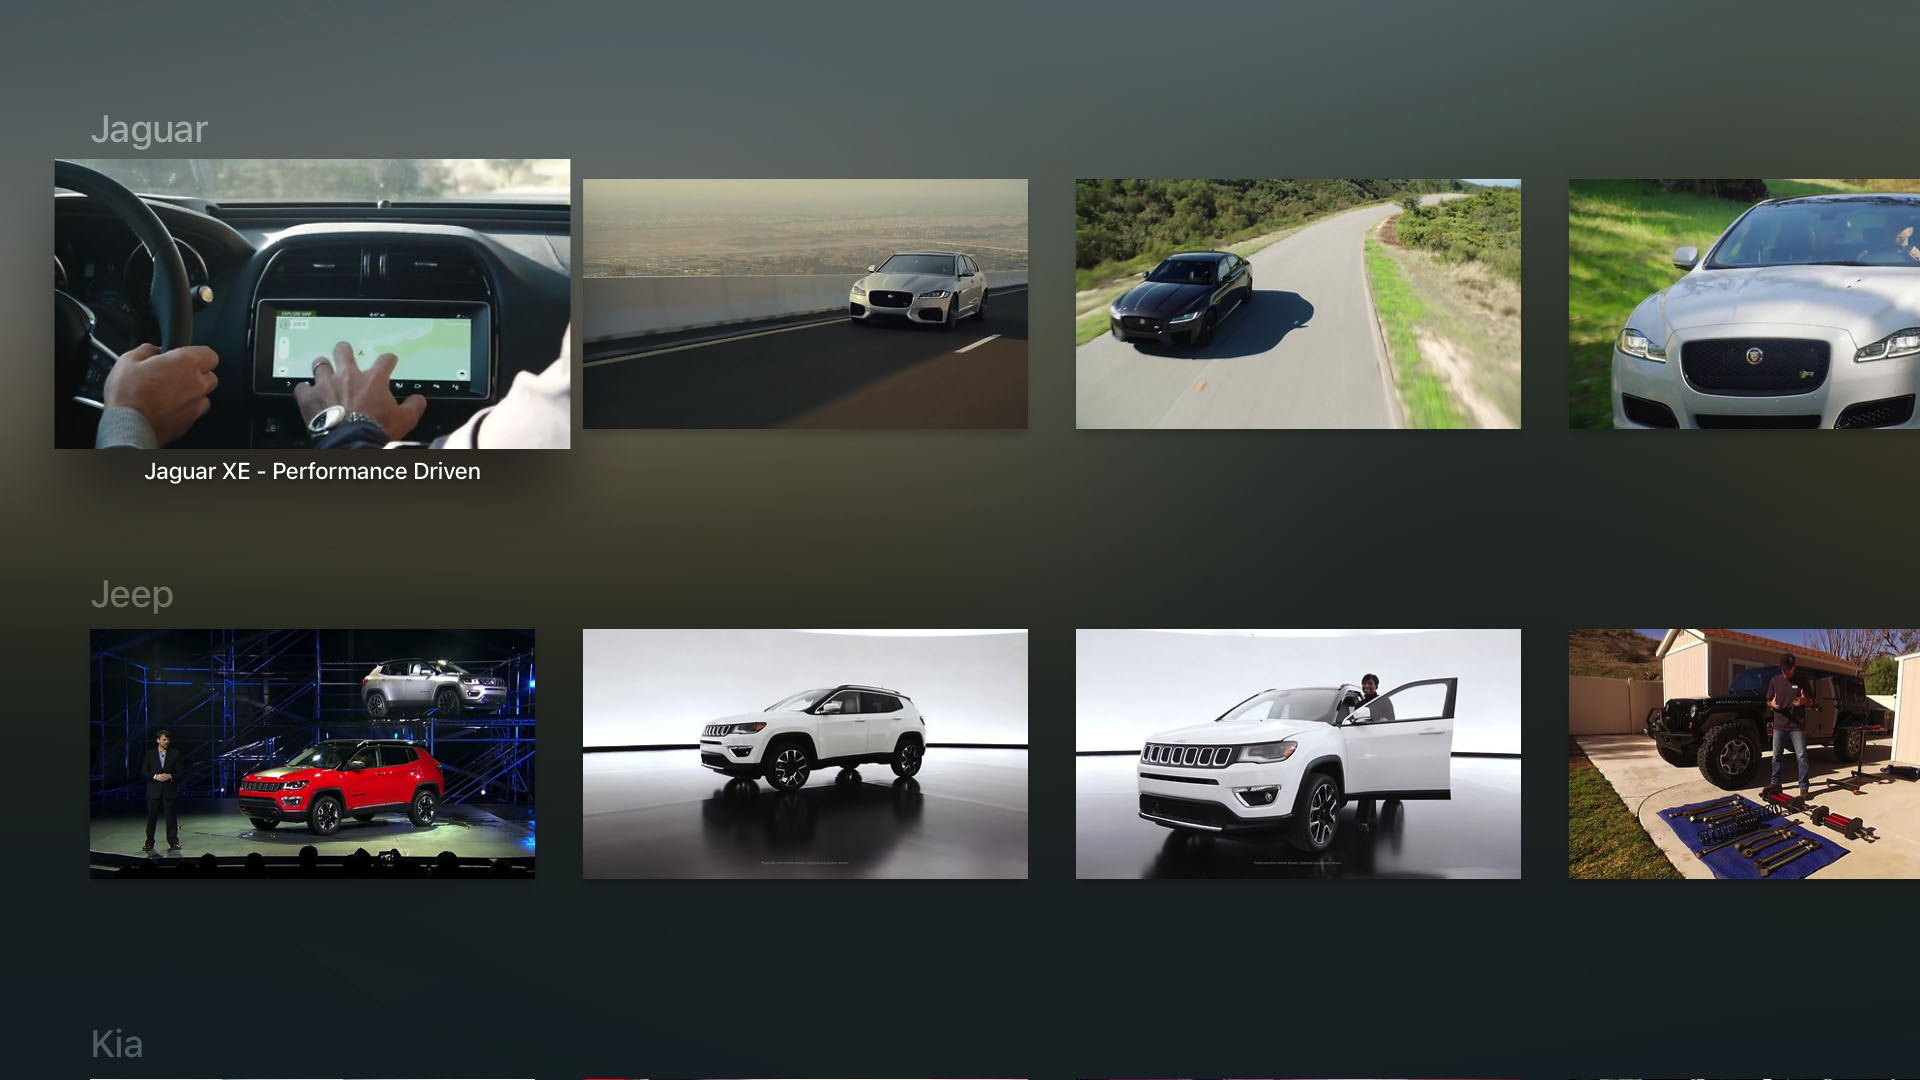 New Cars, Models and Brands Screenshot 003